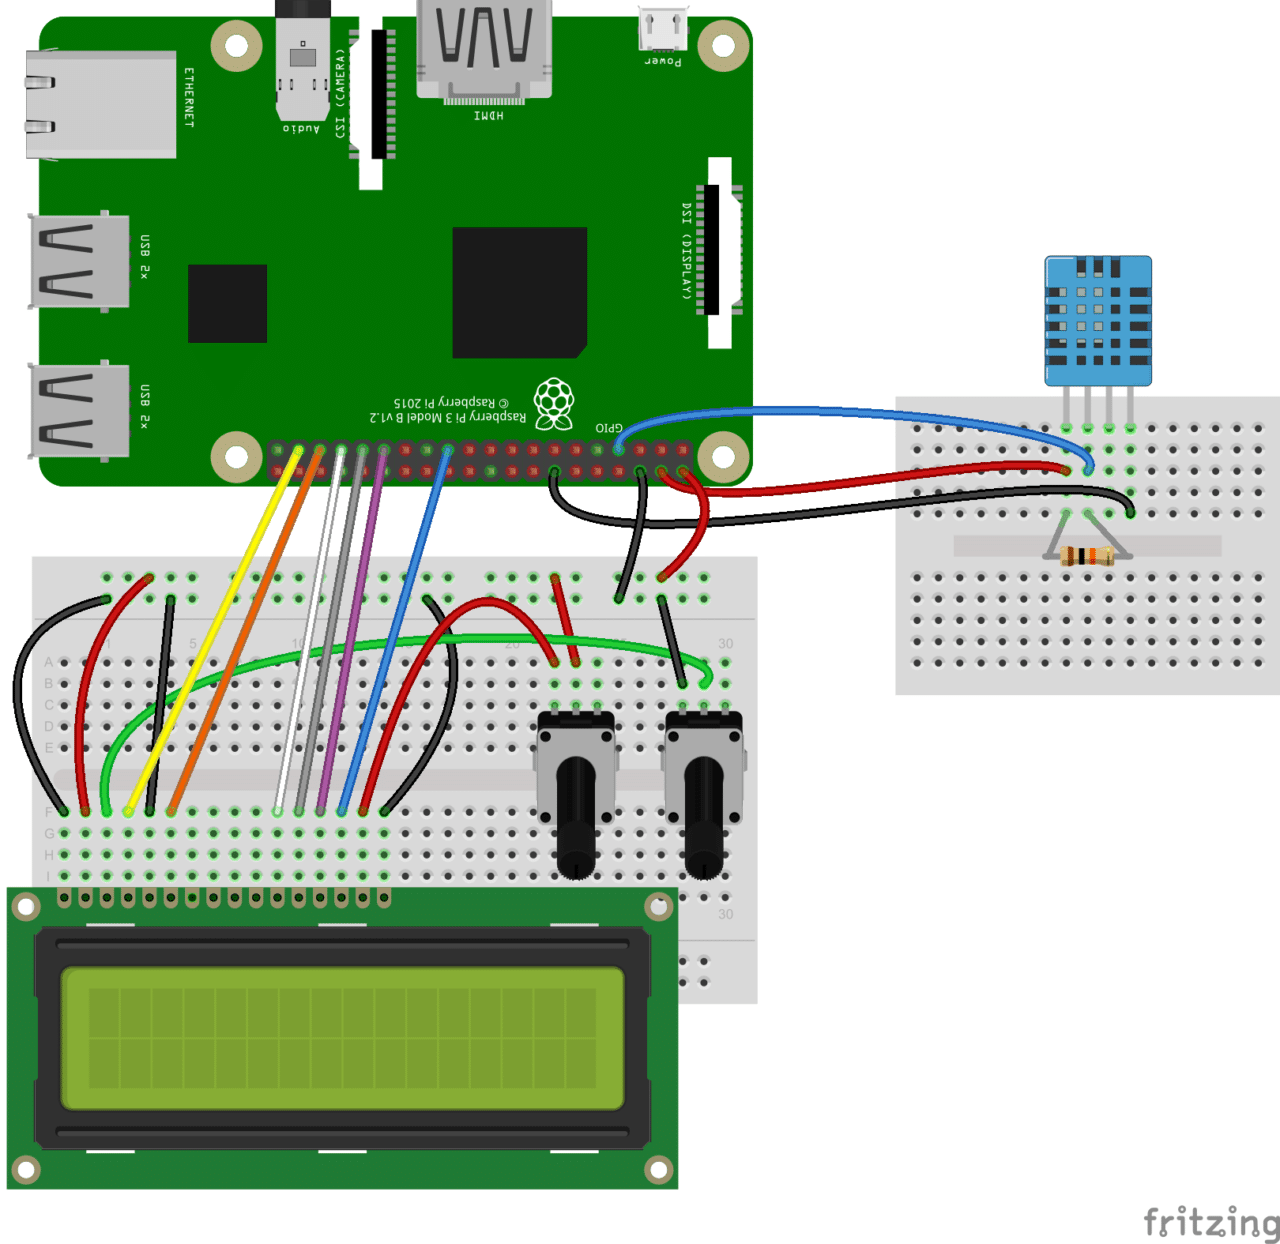 How To Set Up The Dht11 Humidity Sensor On Raspberry Pi 4 Pin Wire Diagram Four With Lcd Output